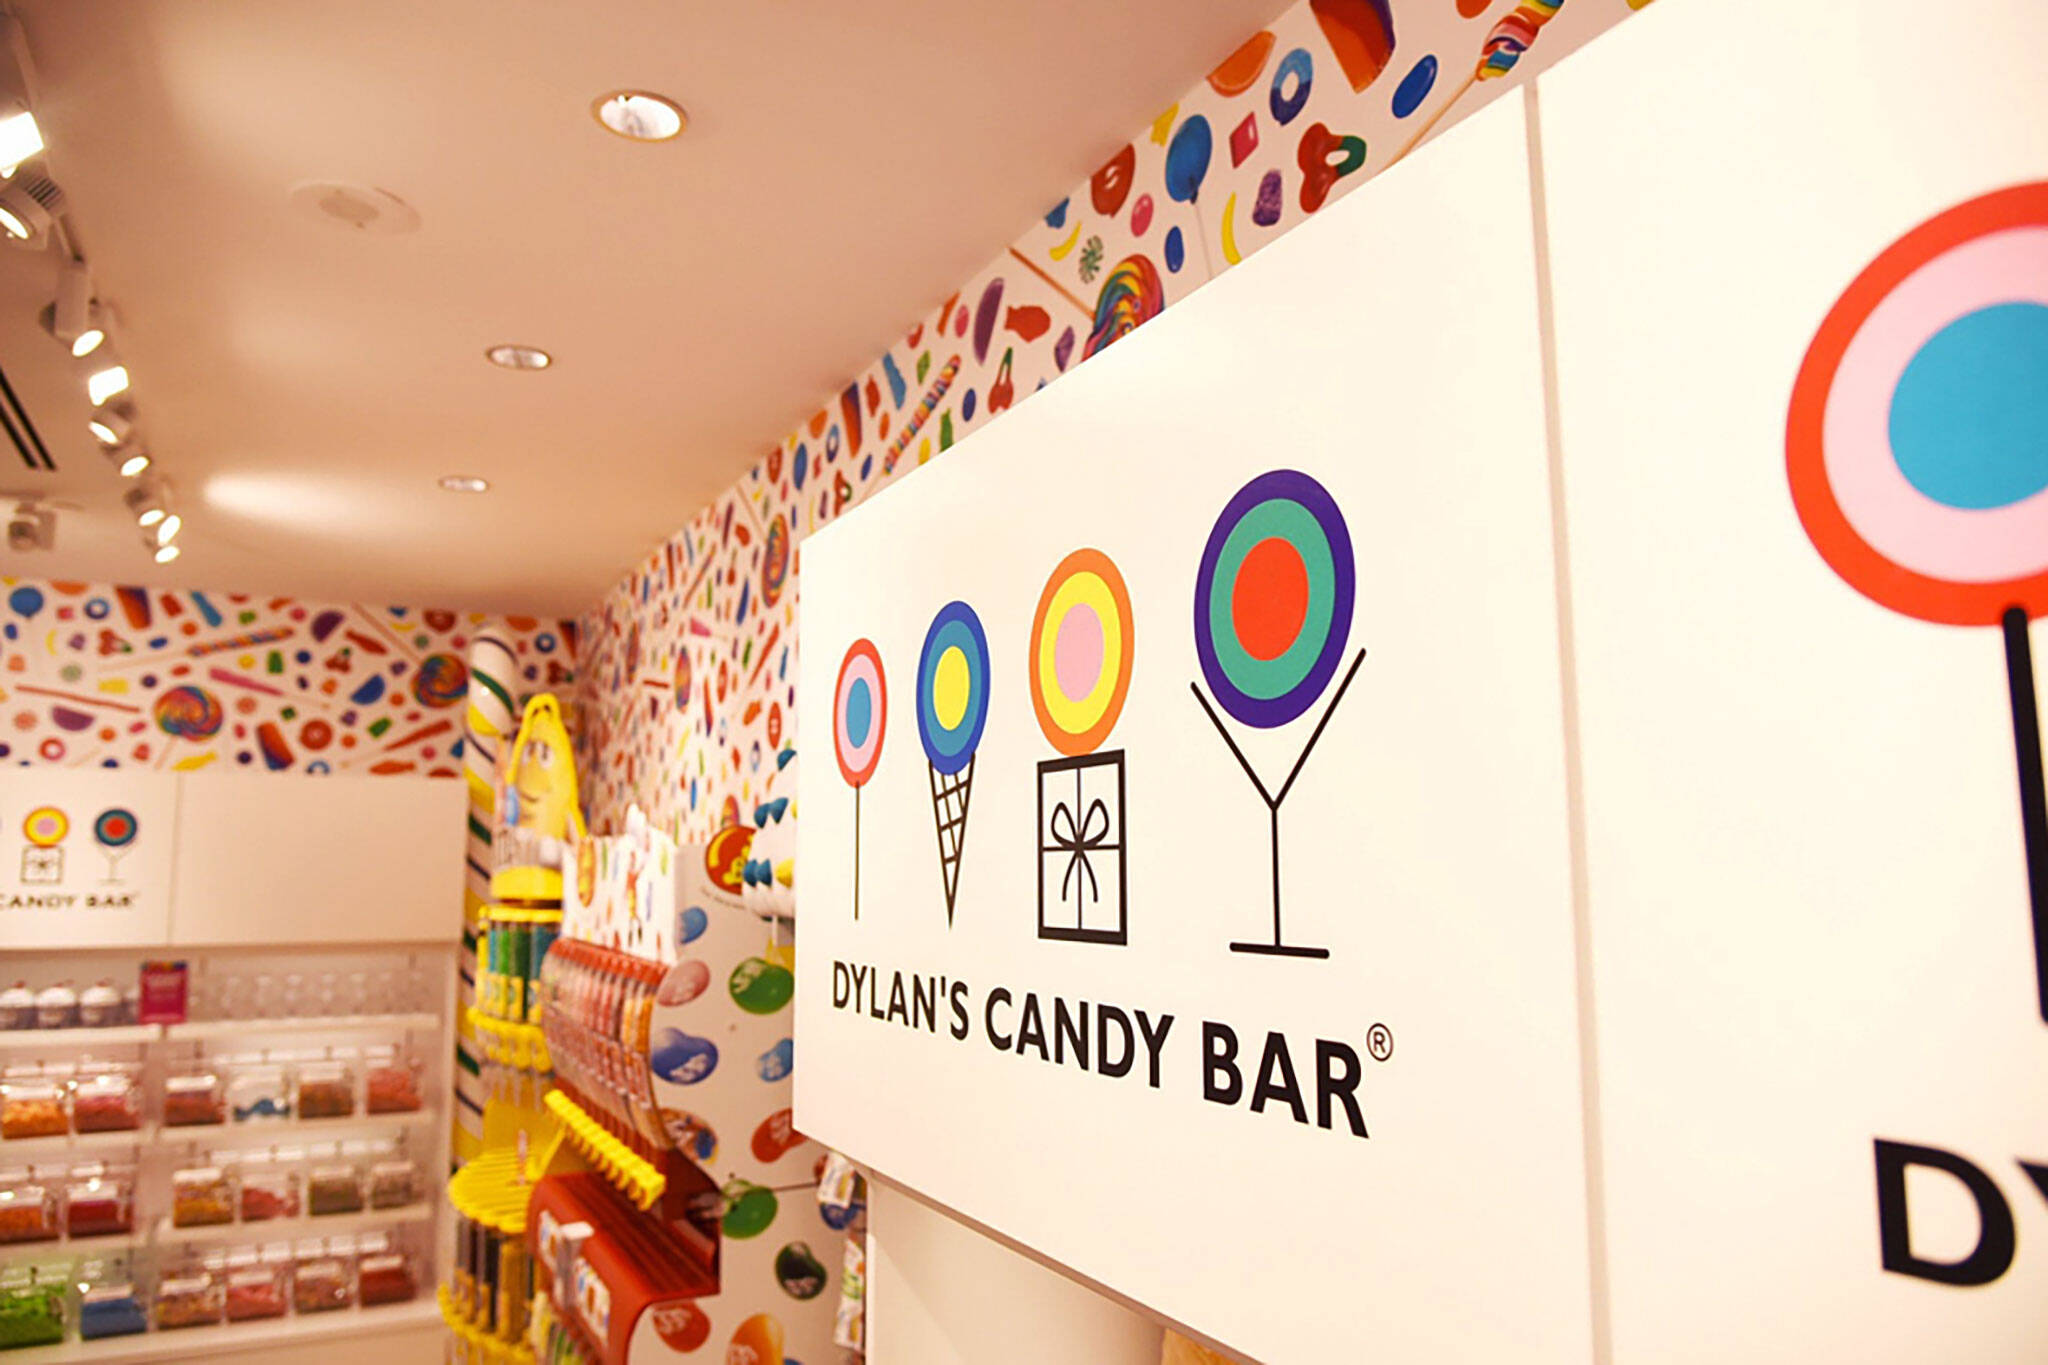 dylans candy bar toronto